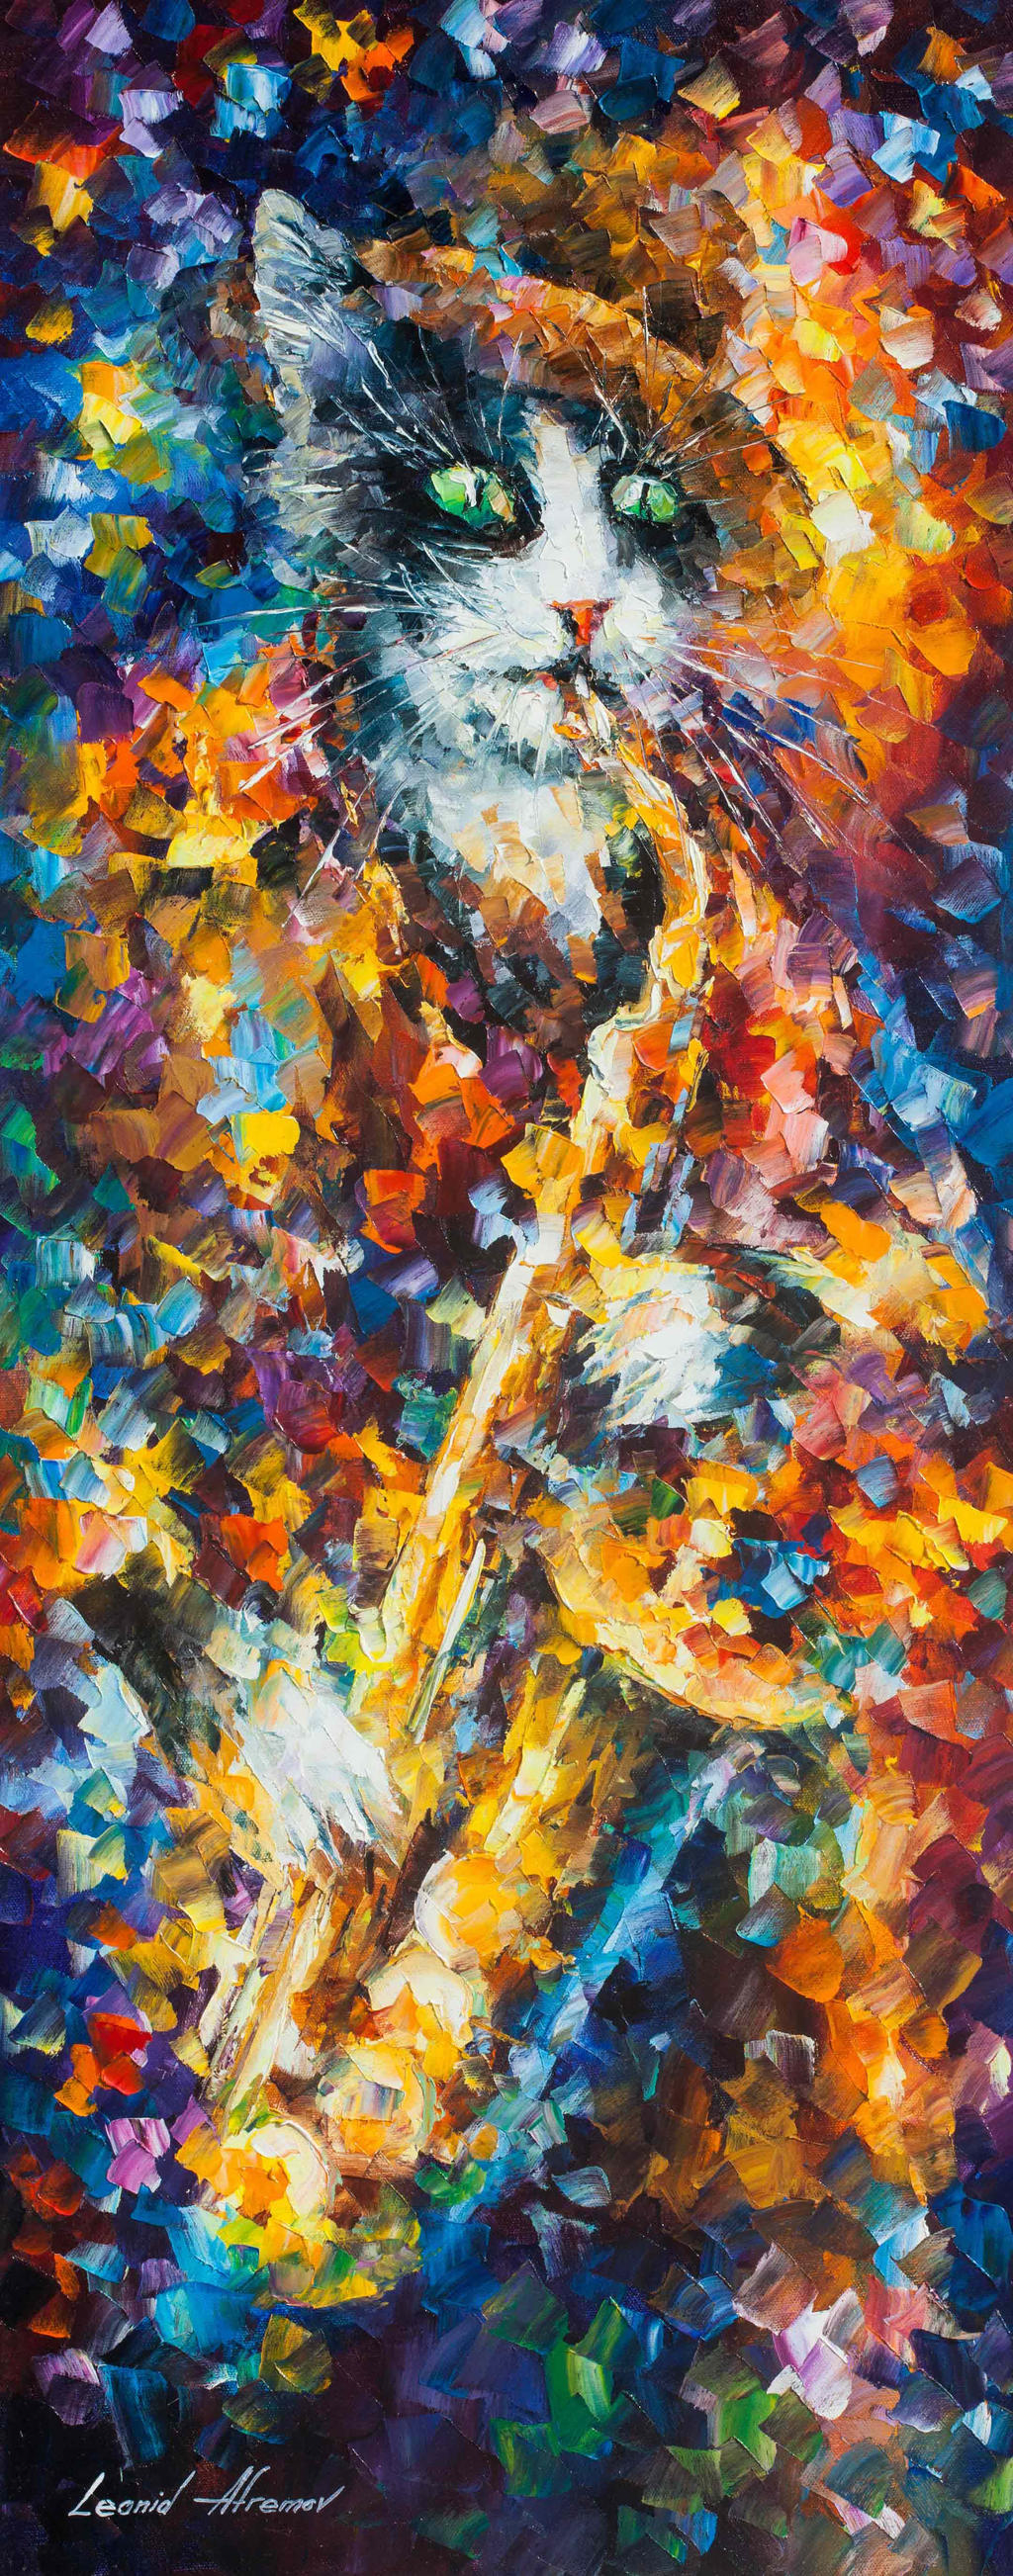 Saxophone cat by leonid afremov by leonidafremov on deviantart for Cat paintings on canvas